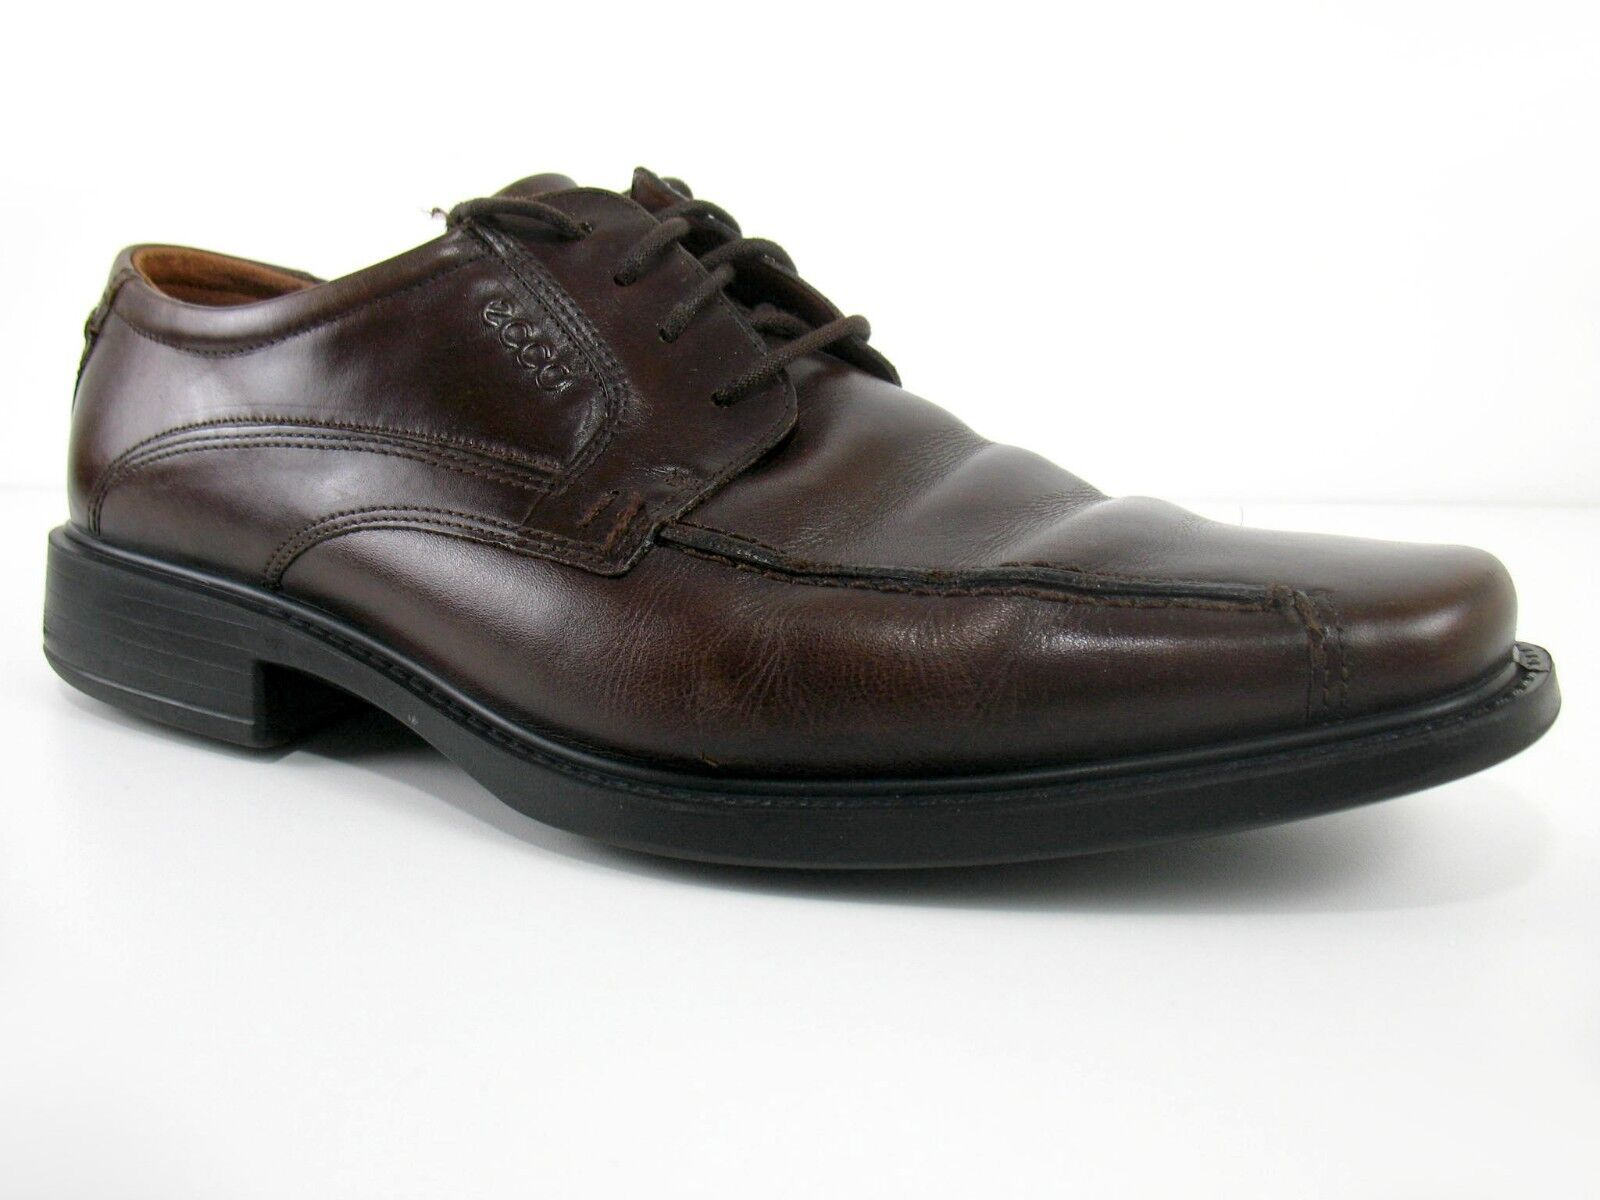 Ecco - New York Helsinki Bicycle Toe Oxfords Brown Leather - Sz 45 (Eur) 12 (US)